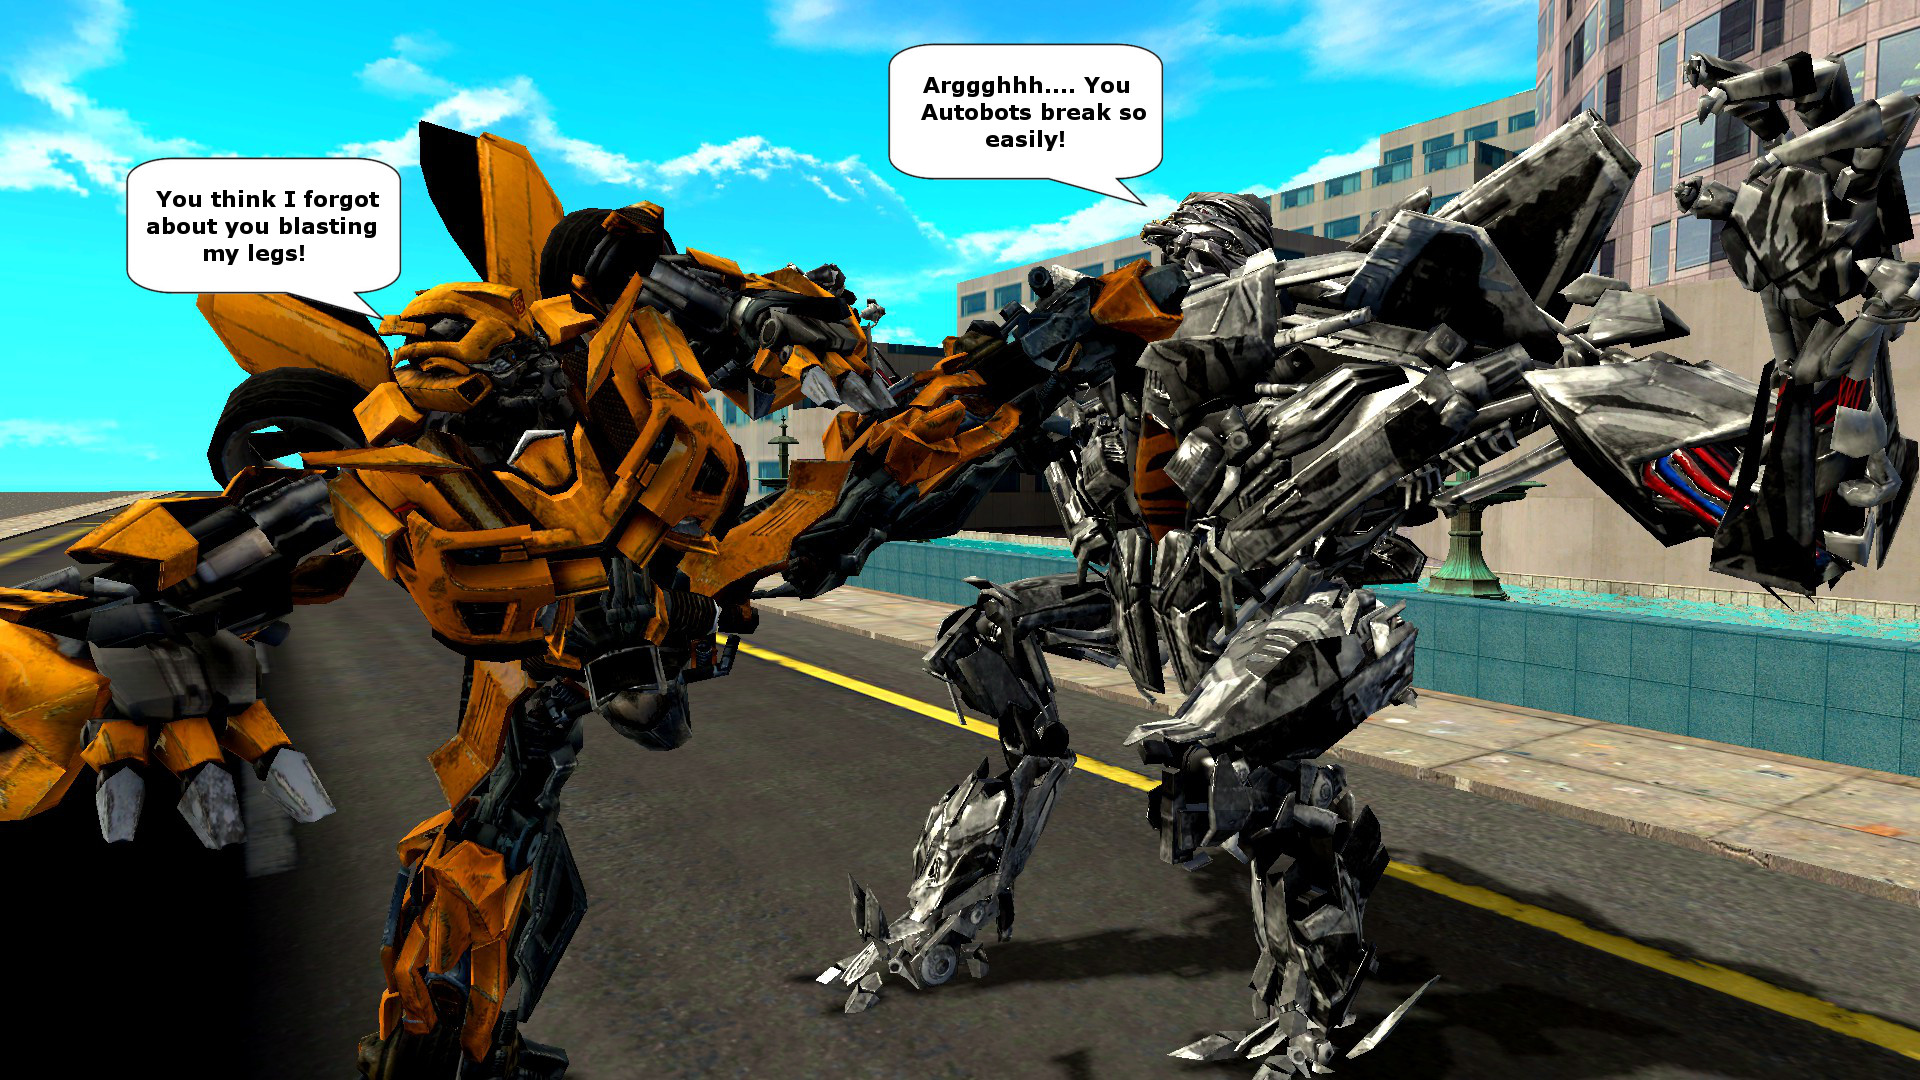 Bumblebee vs Starscream - Bing images